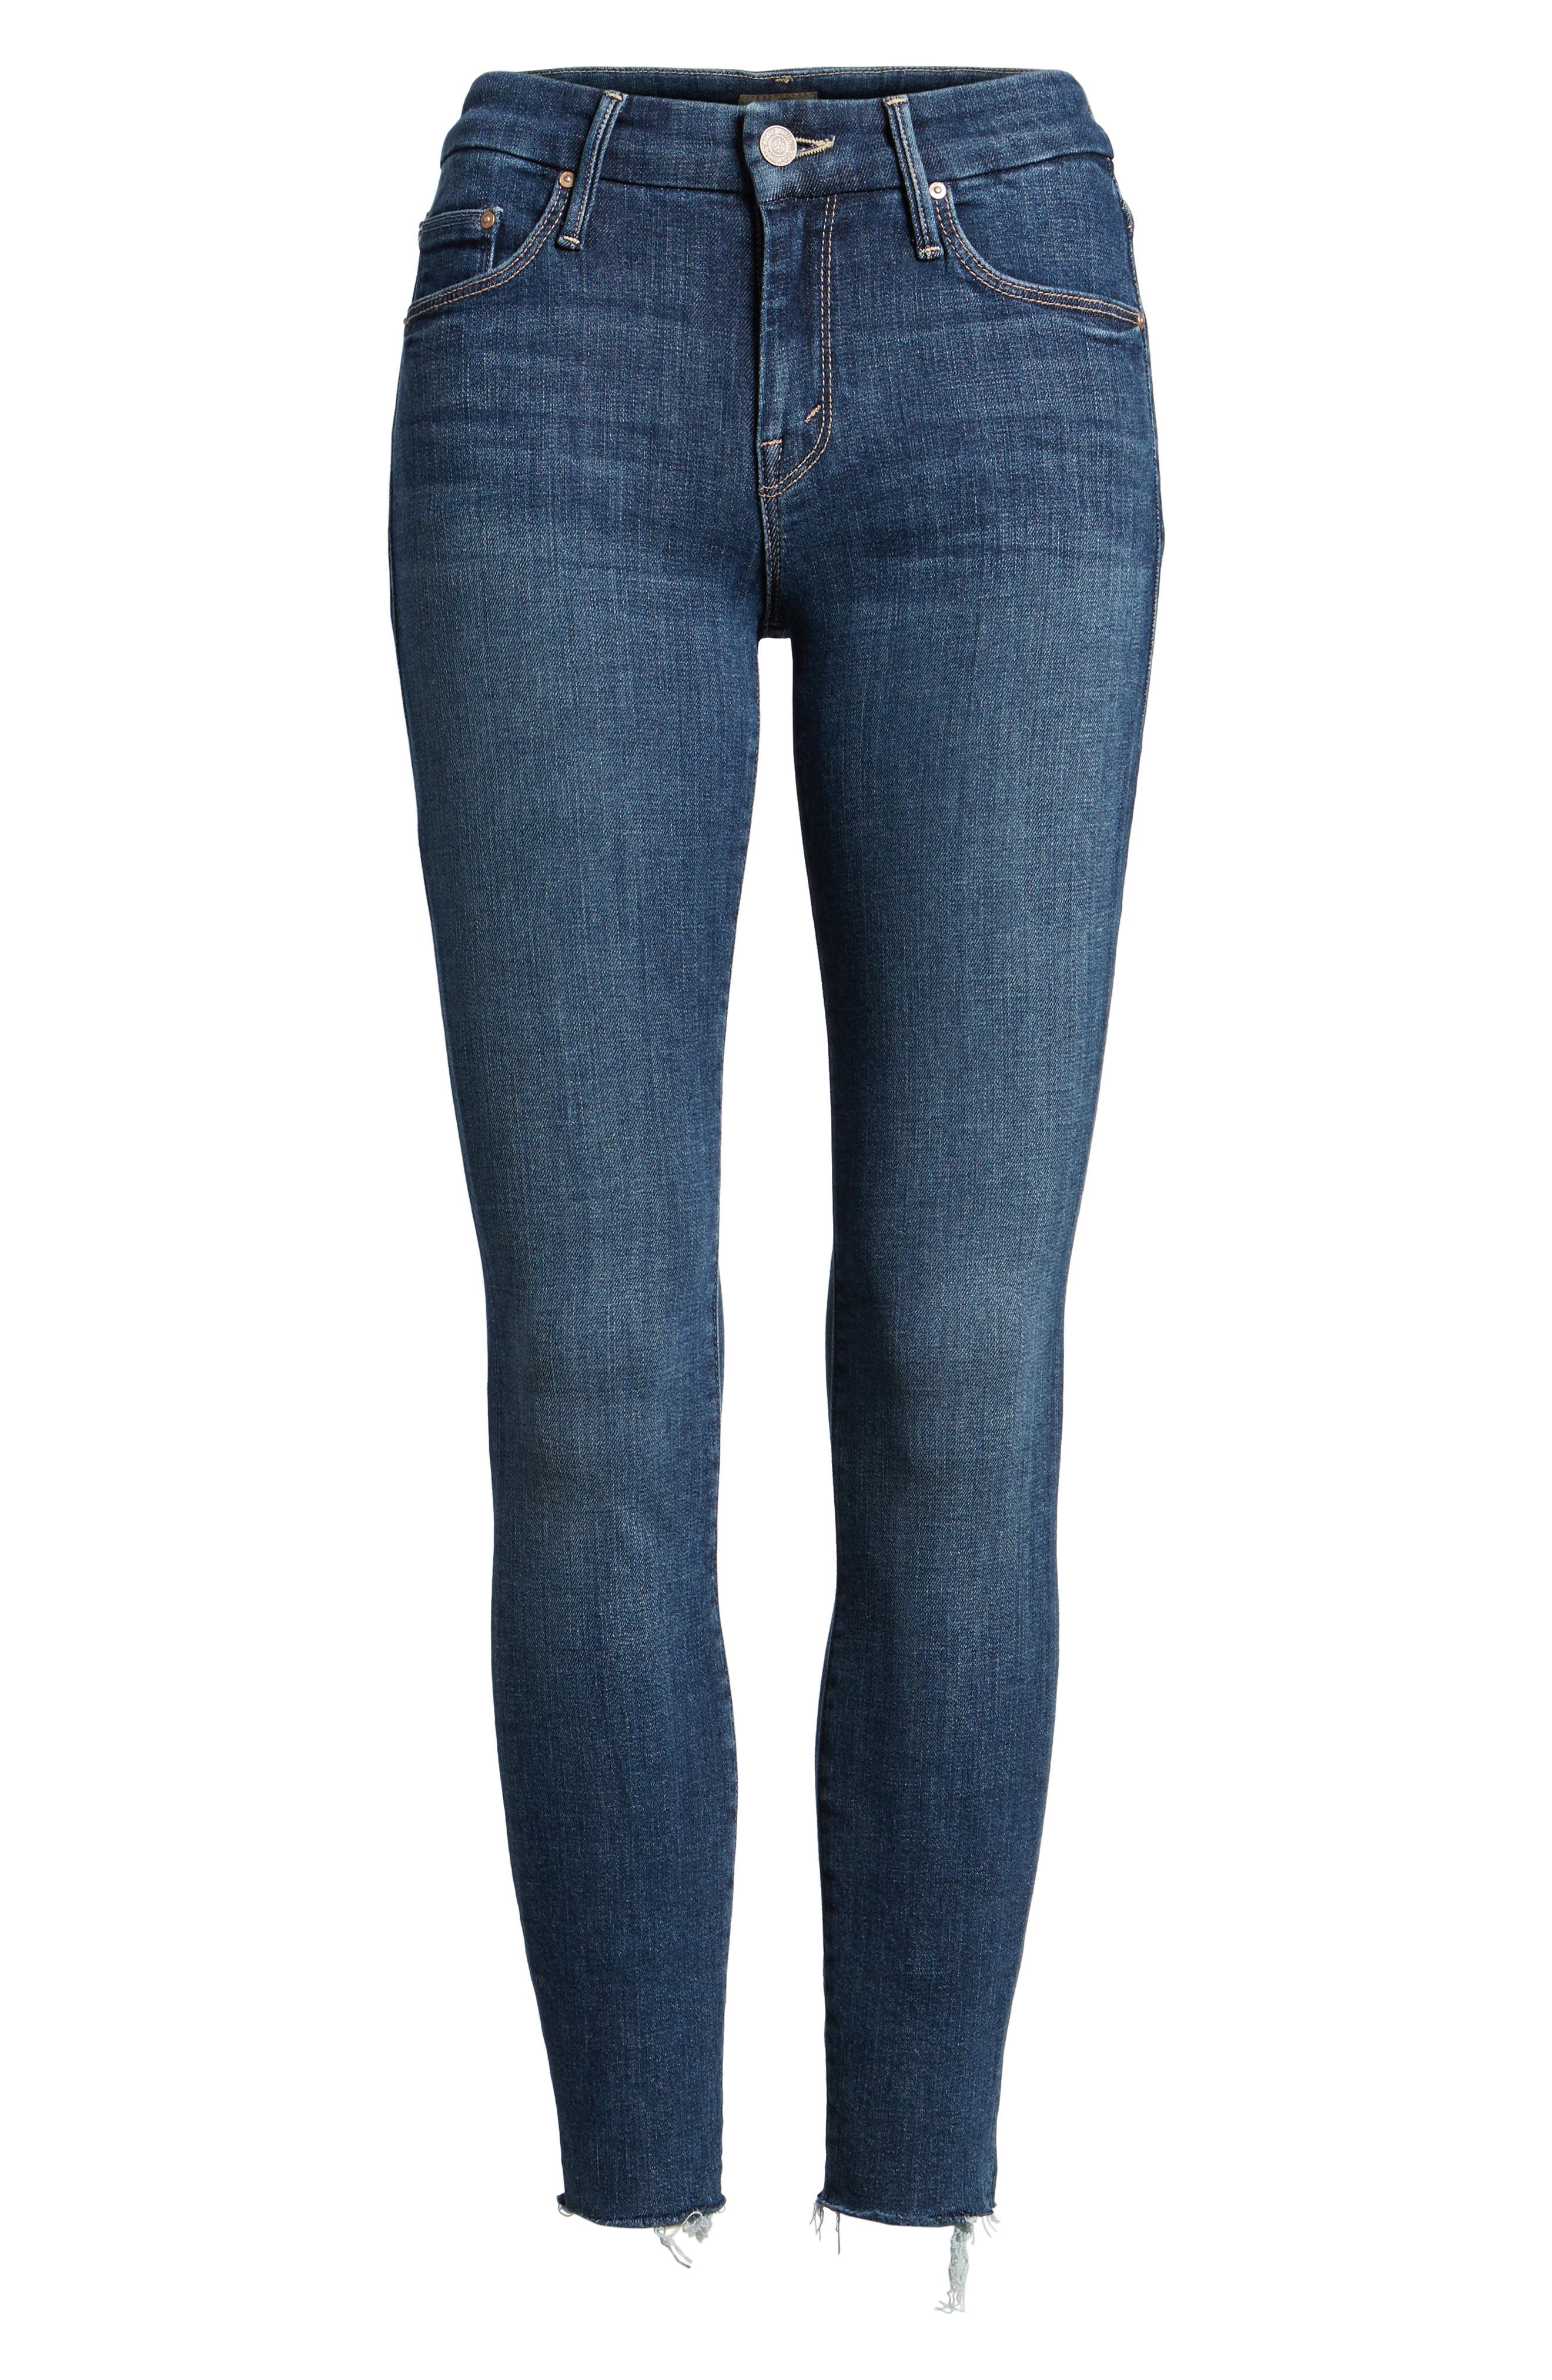 'TheLooker'Frayed Ankle Jeans,                             Alternate thumbnail 2, color,                             GIRL CRUSH